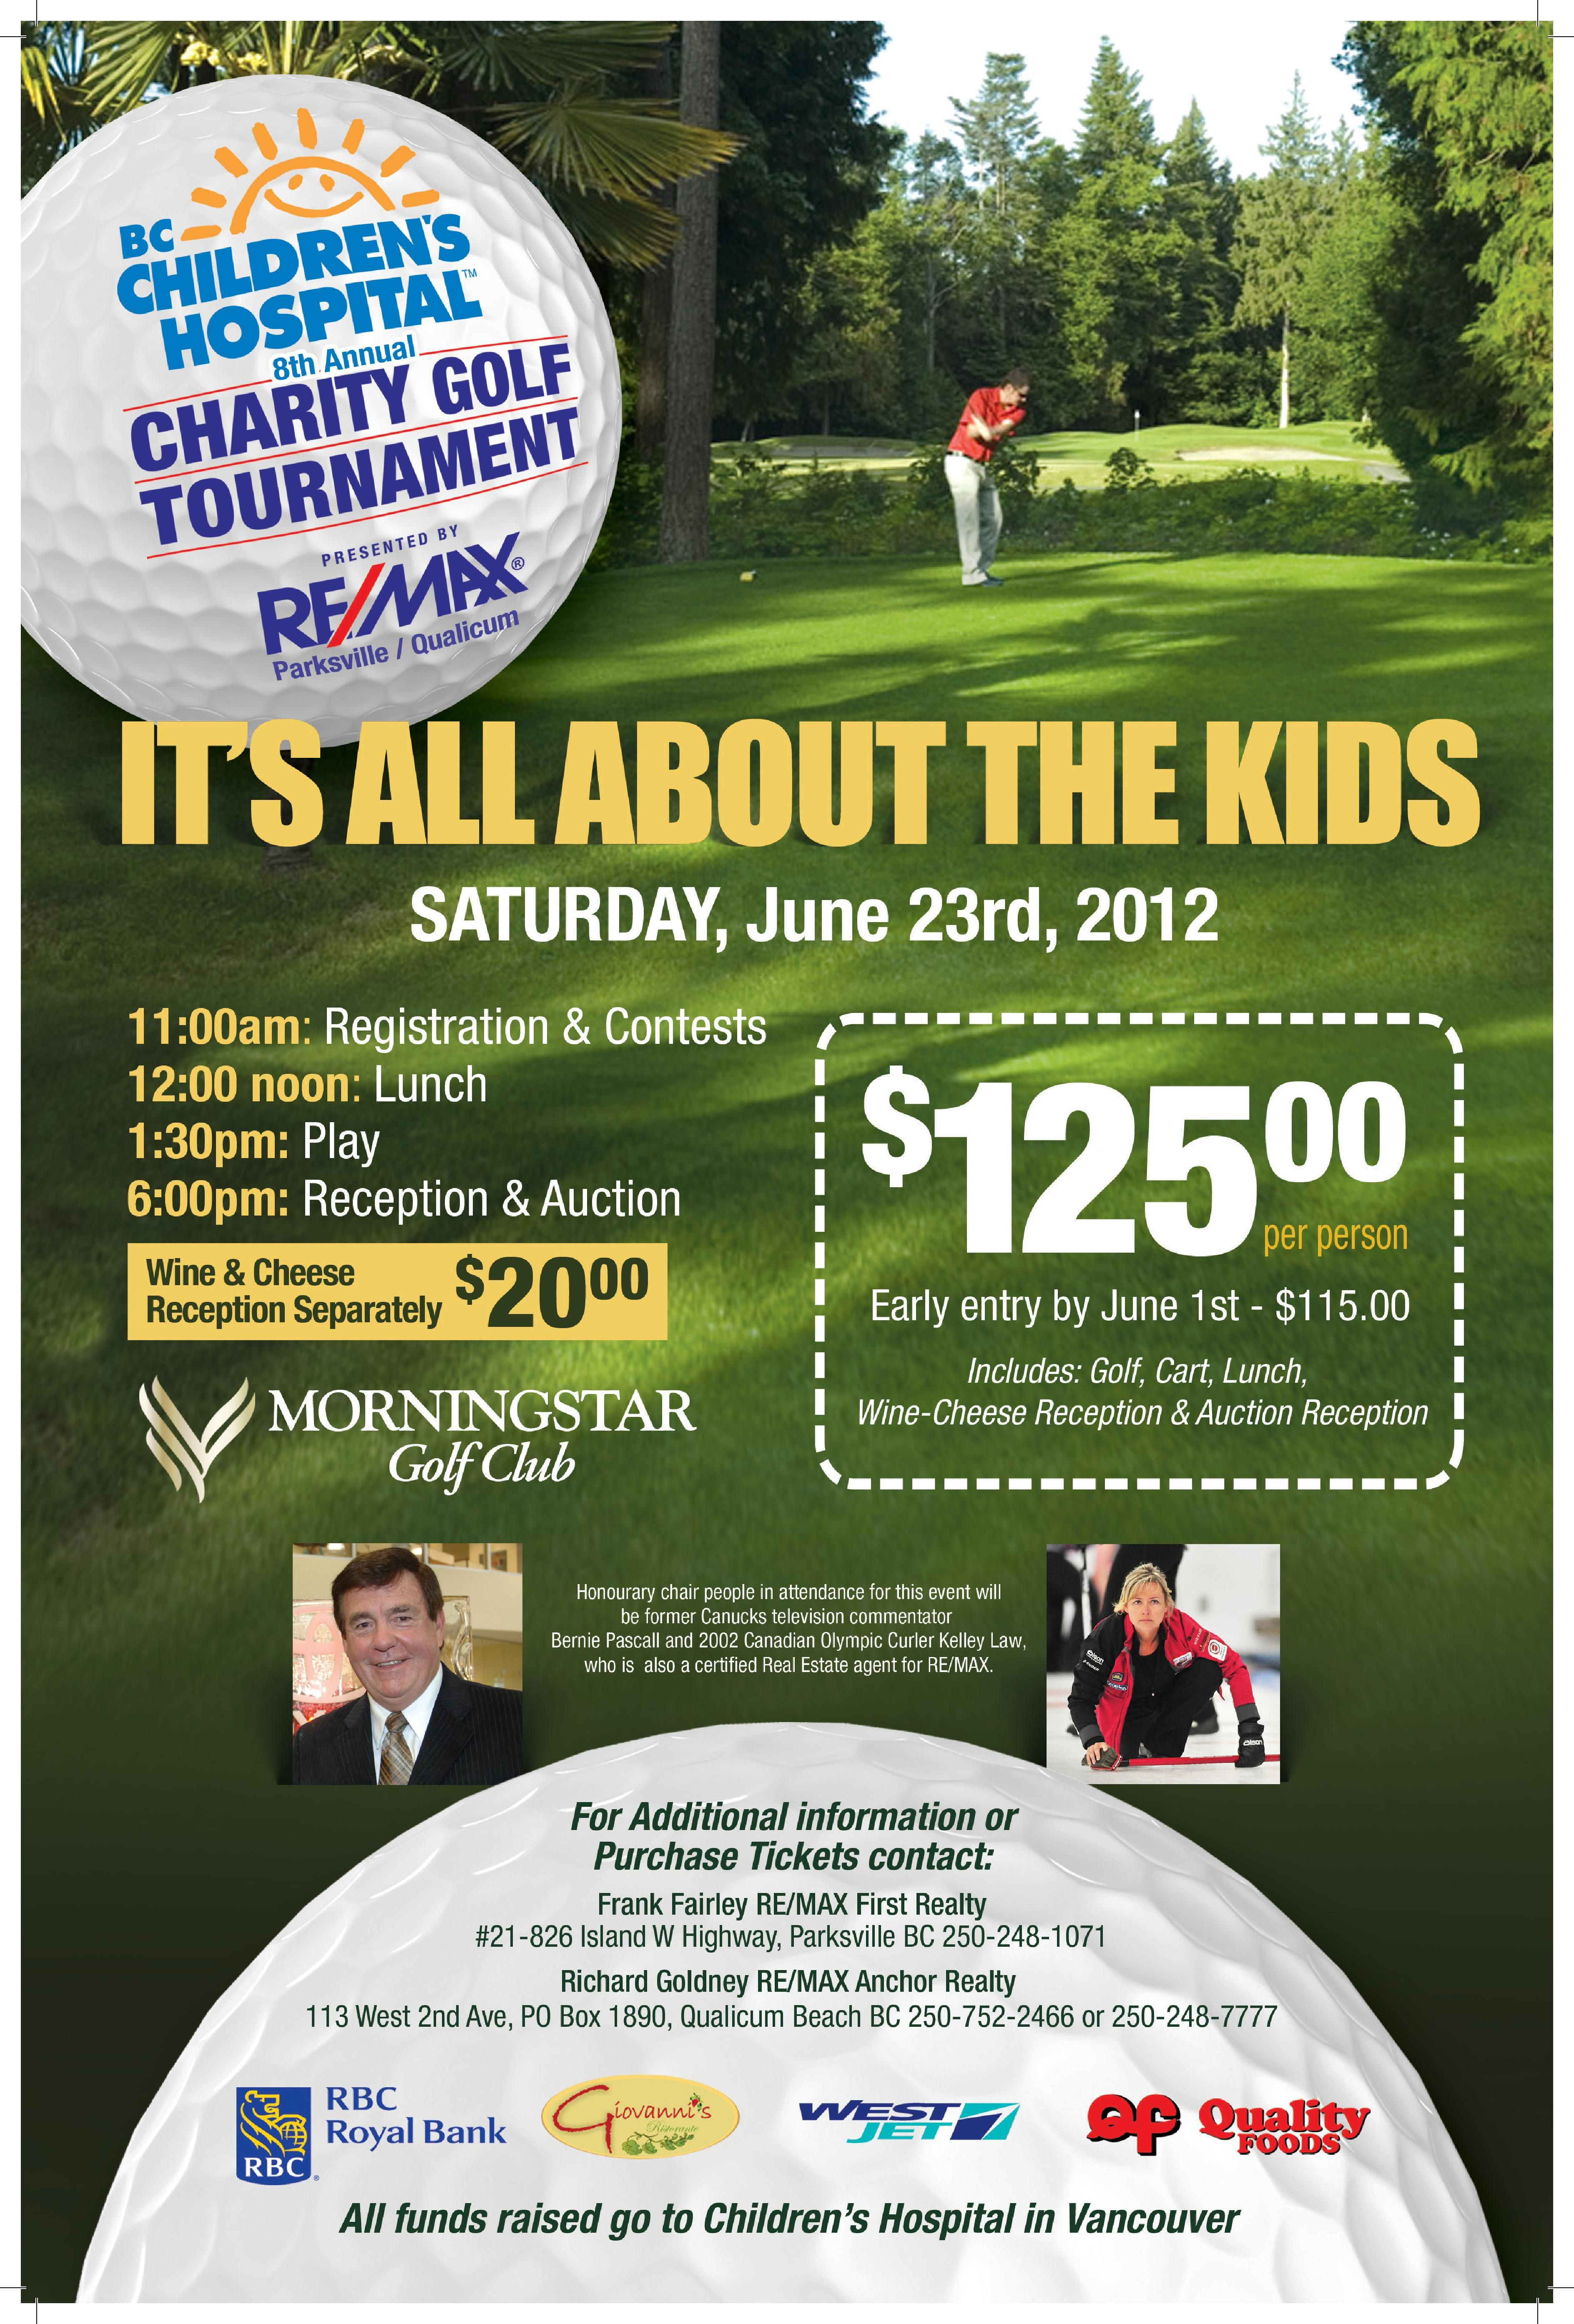 bc children's hospital 8th annual charity golf tournament | july